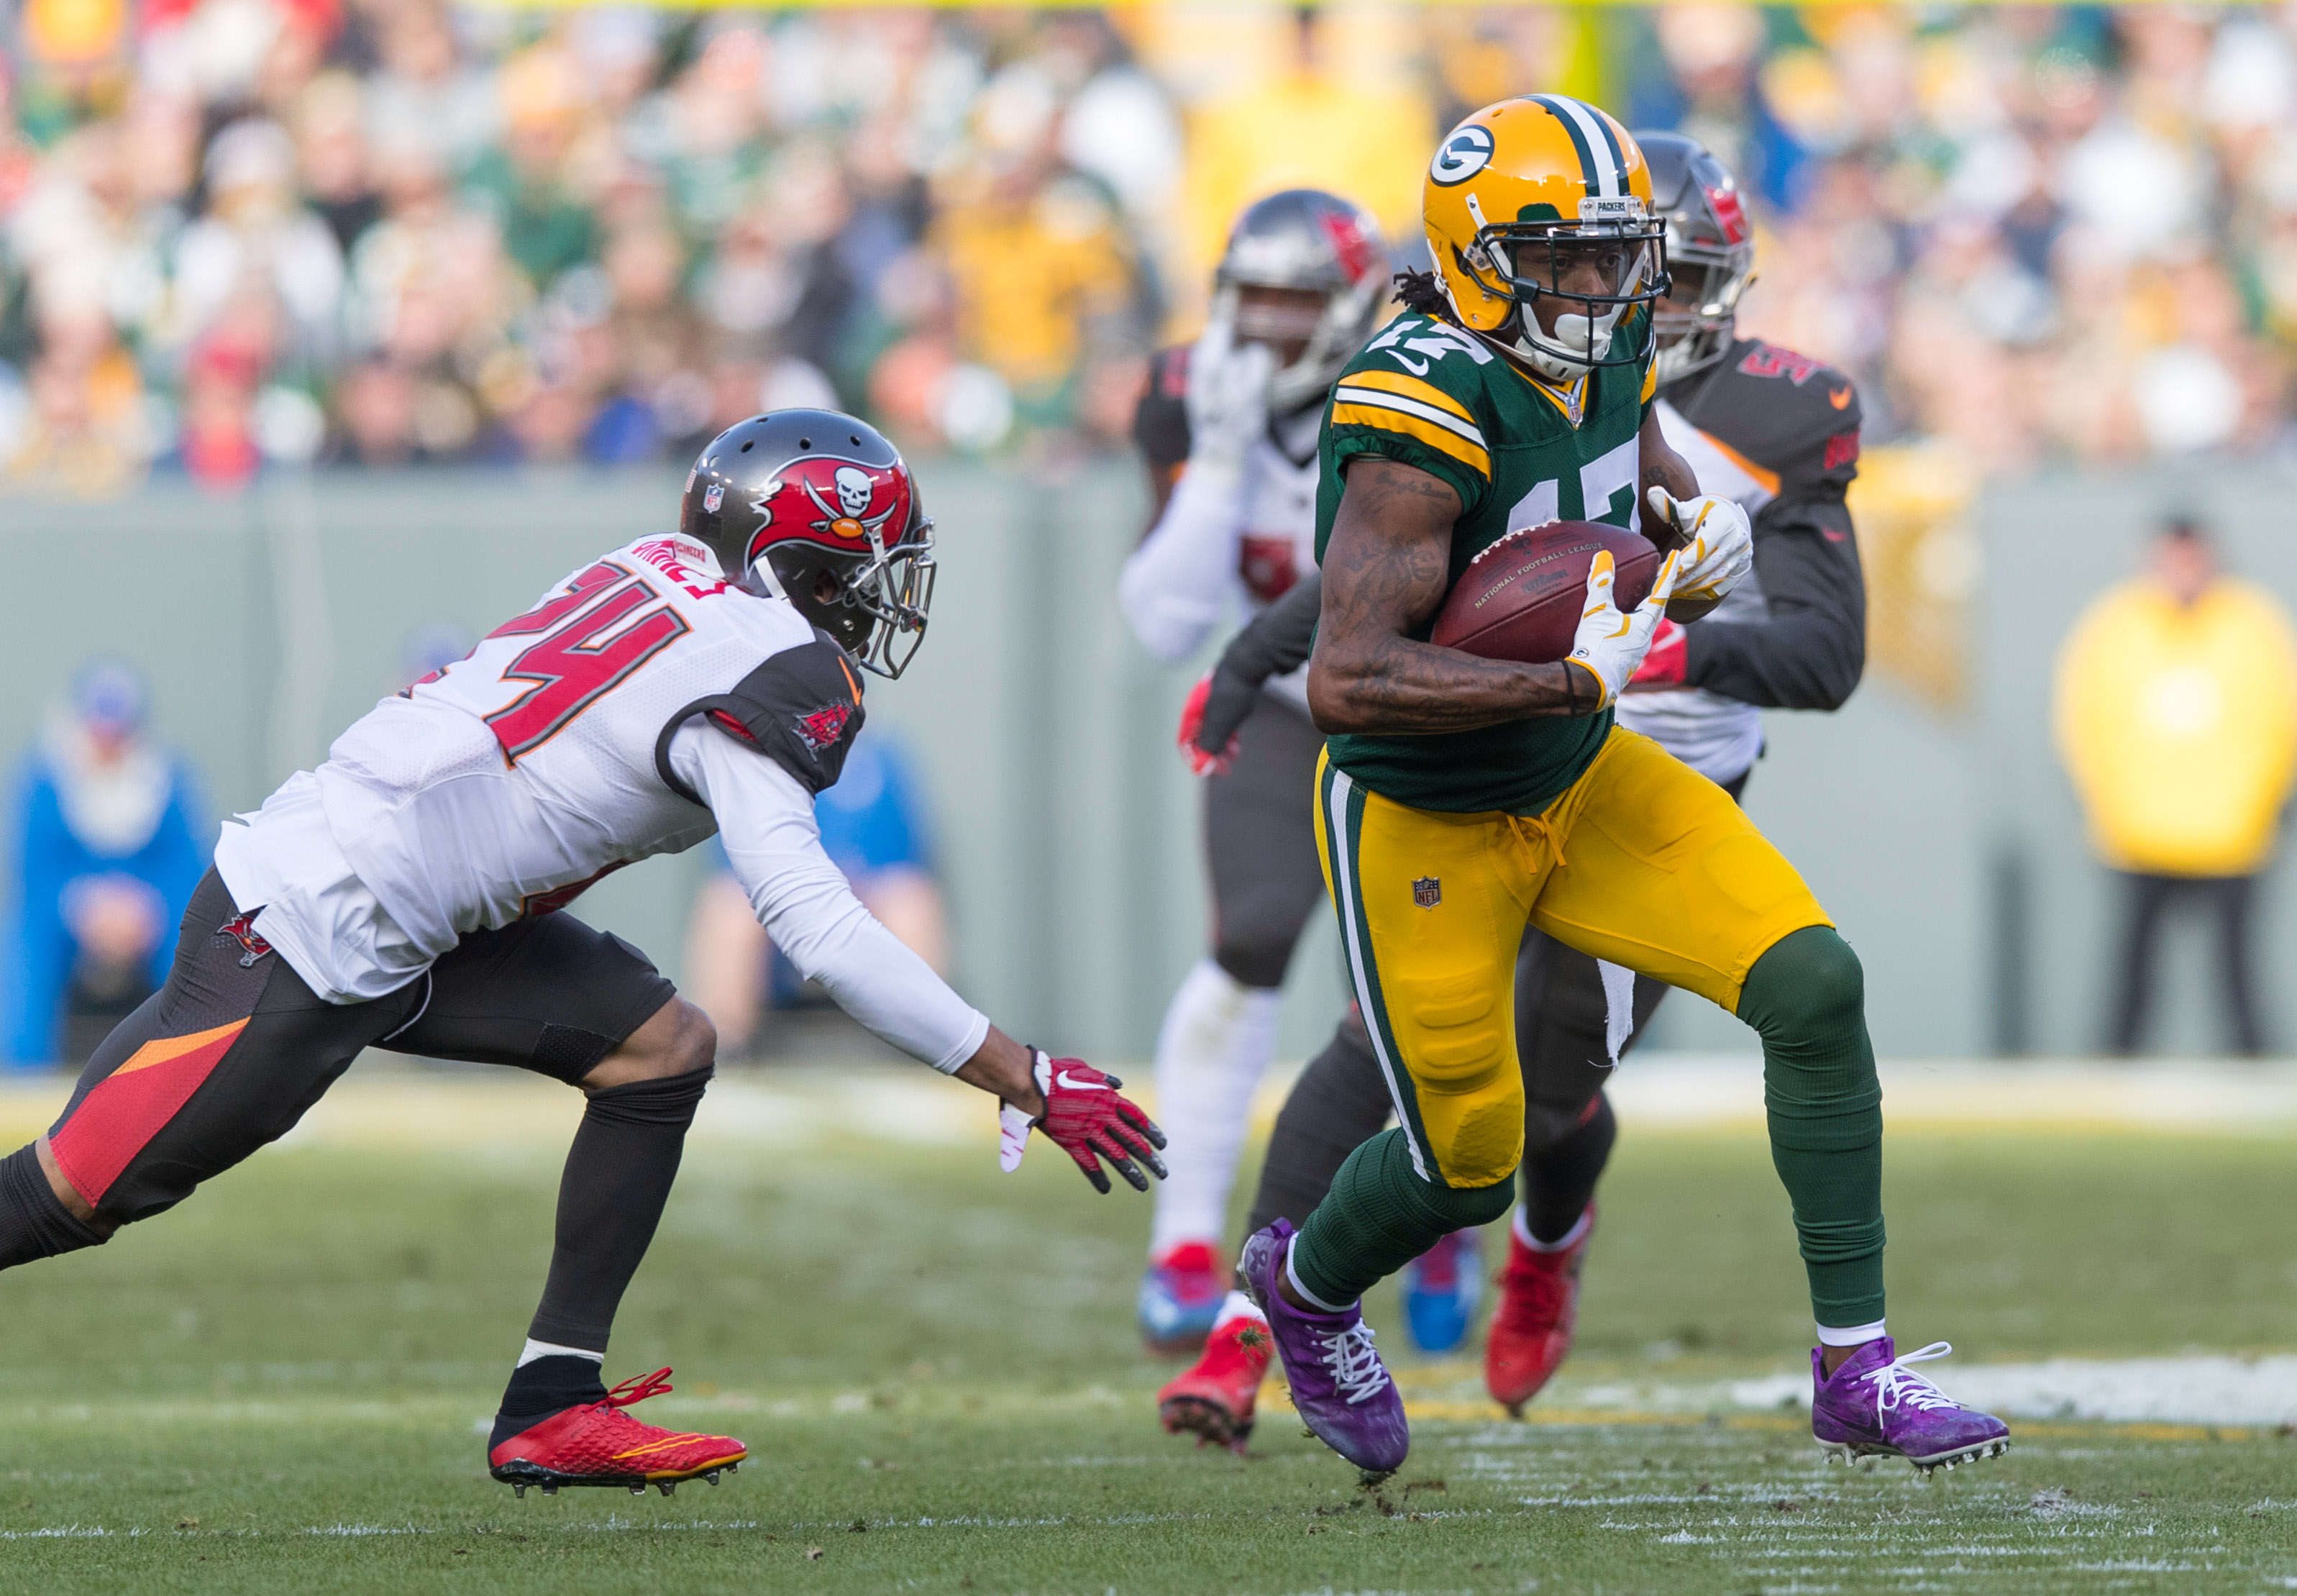 NFL: Tampa Bay Buccaneers at Green Bay Packers